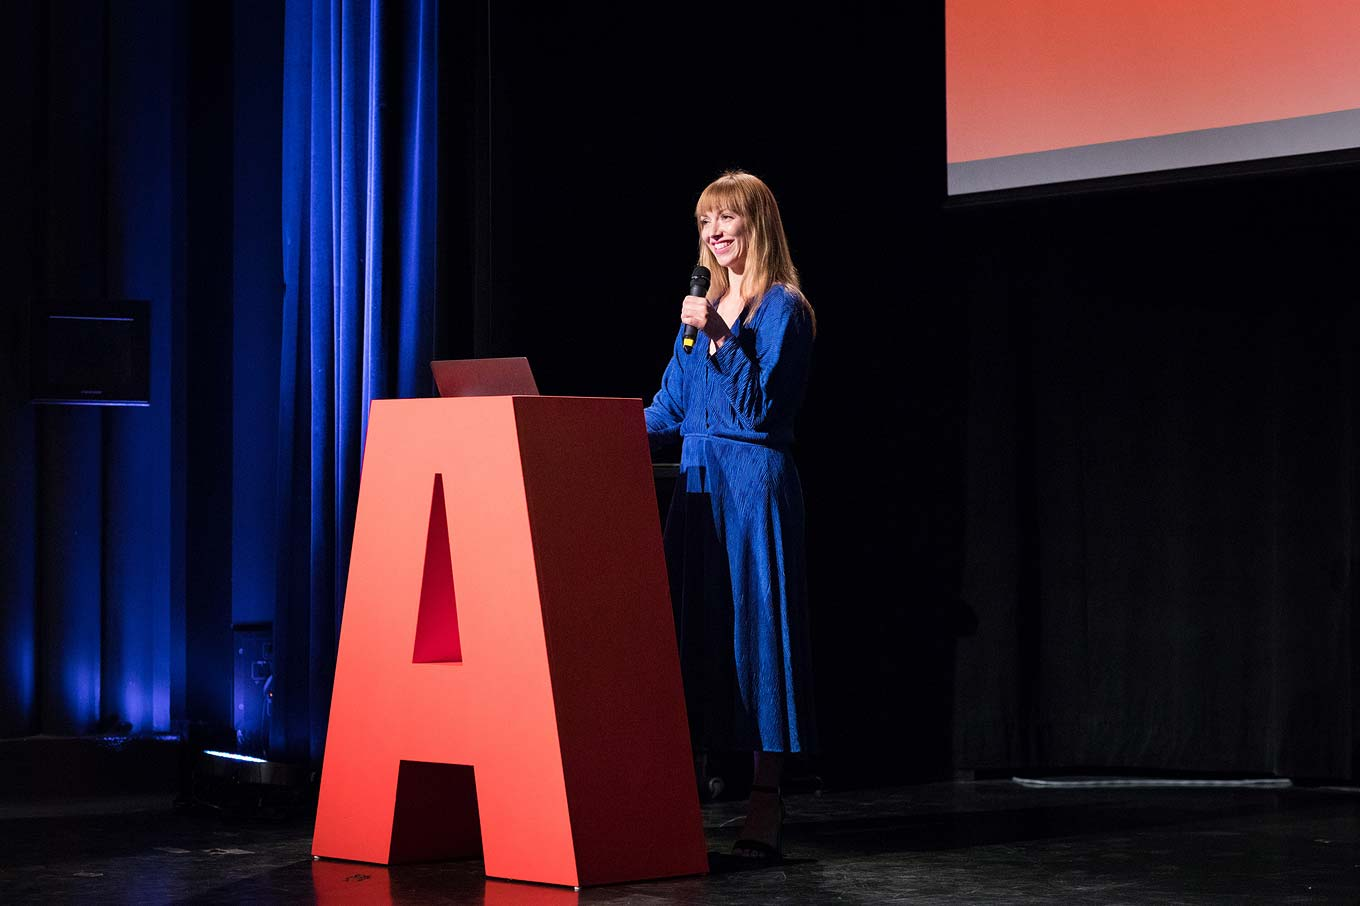 Elizabeth Carey Smith introducing speakers at ATypI 2017 Montreal